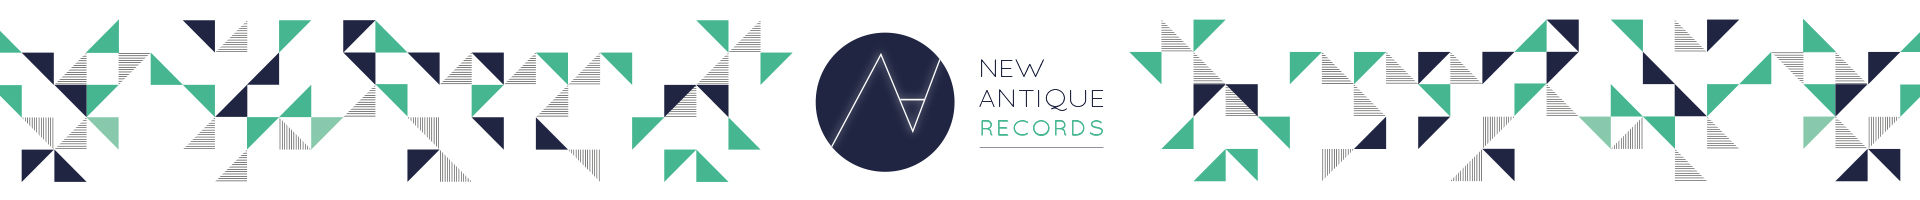 http://www.newantiquerecords.com/wp-content/uploads/2015/11/BANNER_New3.jpg